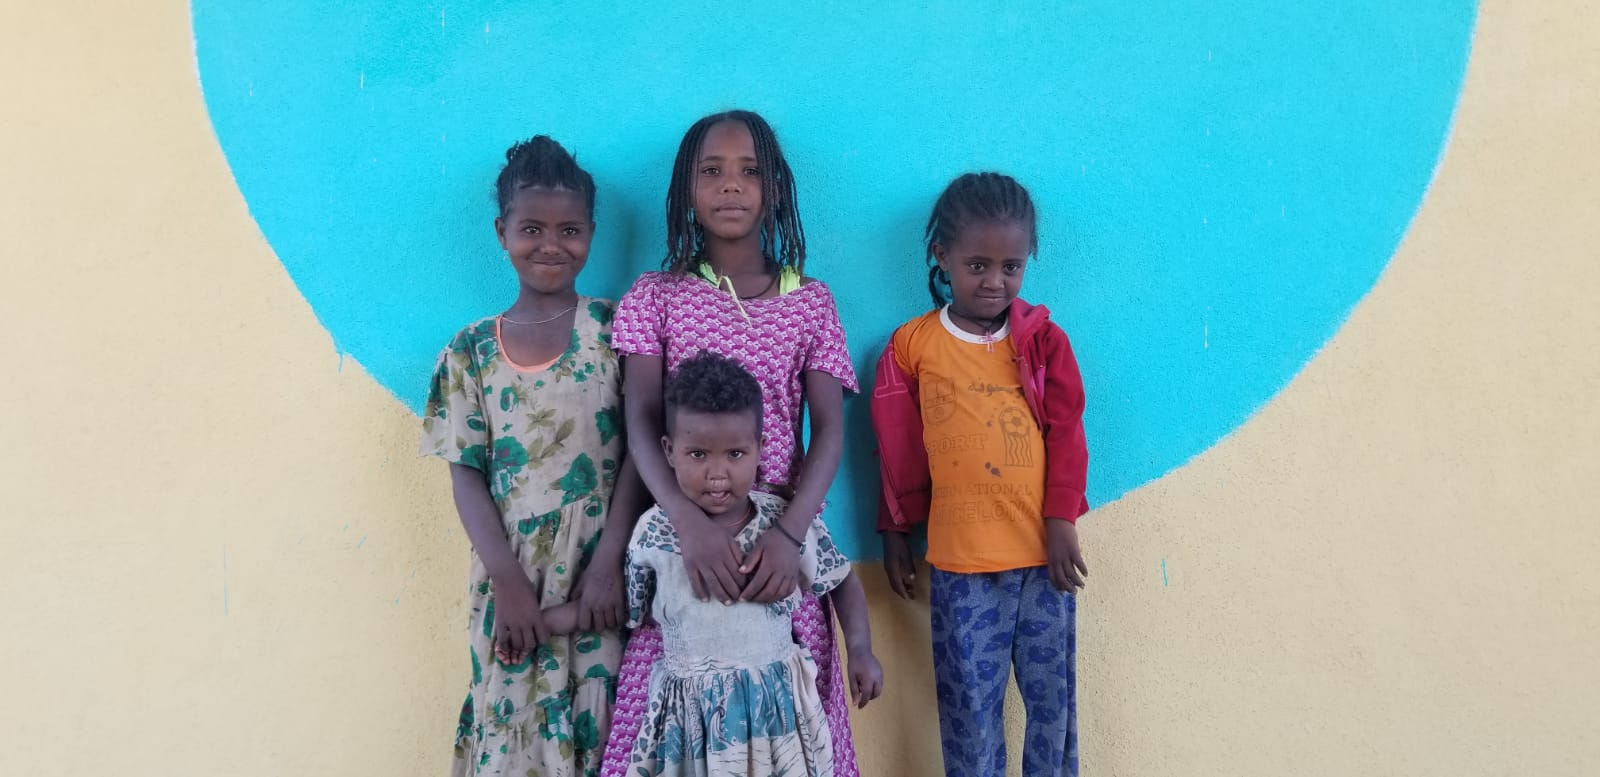 WhatsApp_Image_2020-05-18_at_12.28.36.jpeg